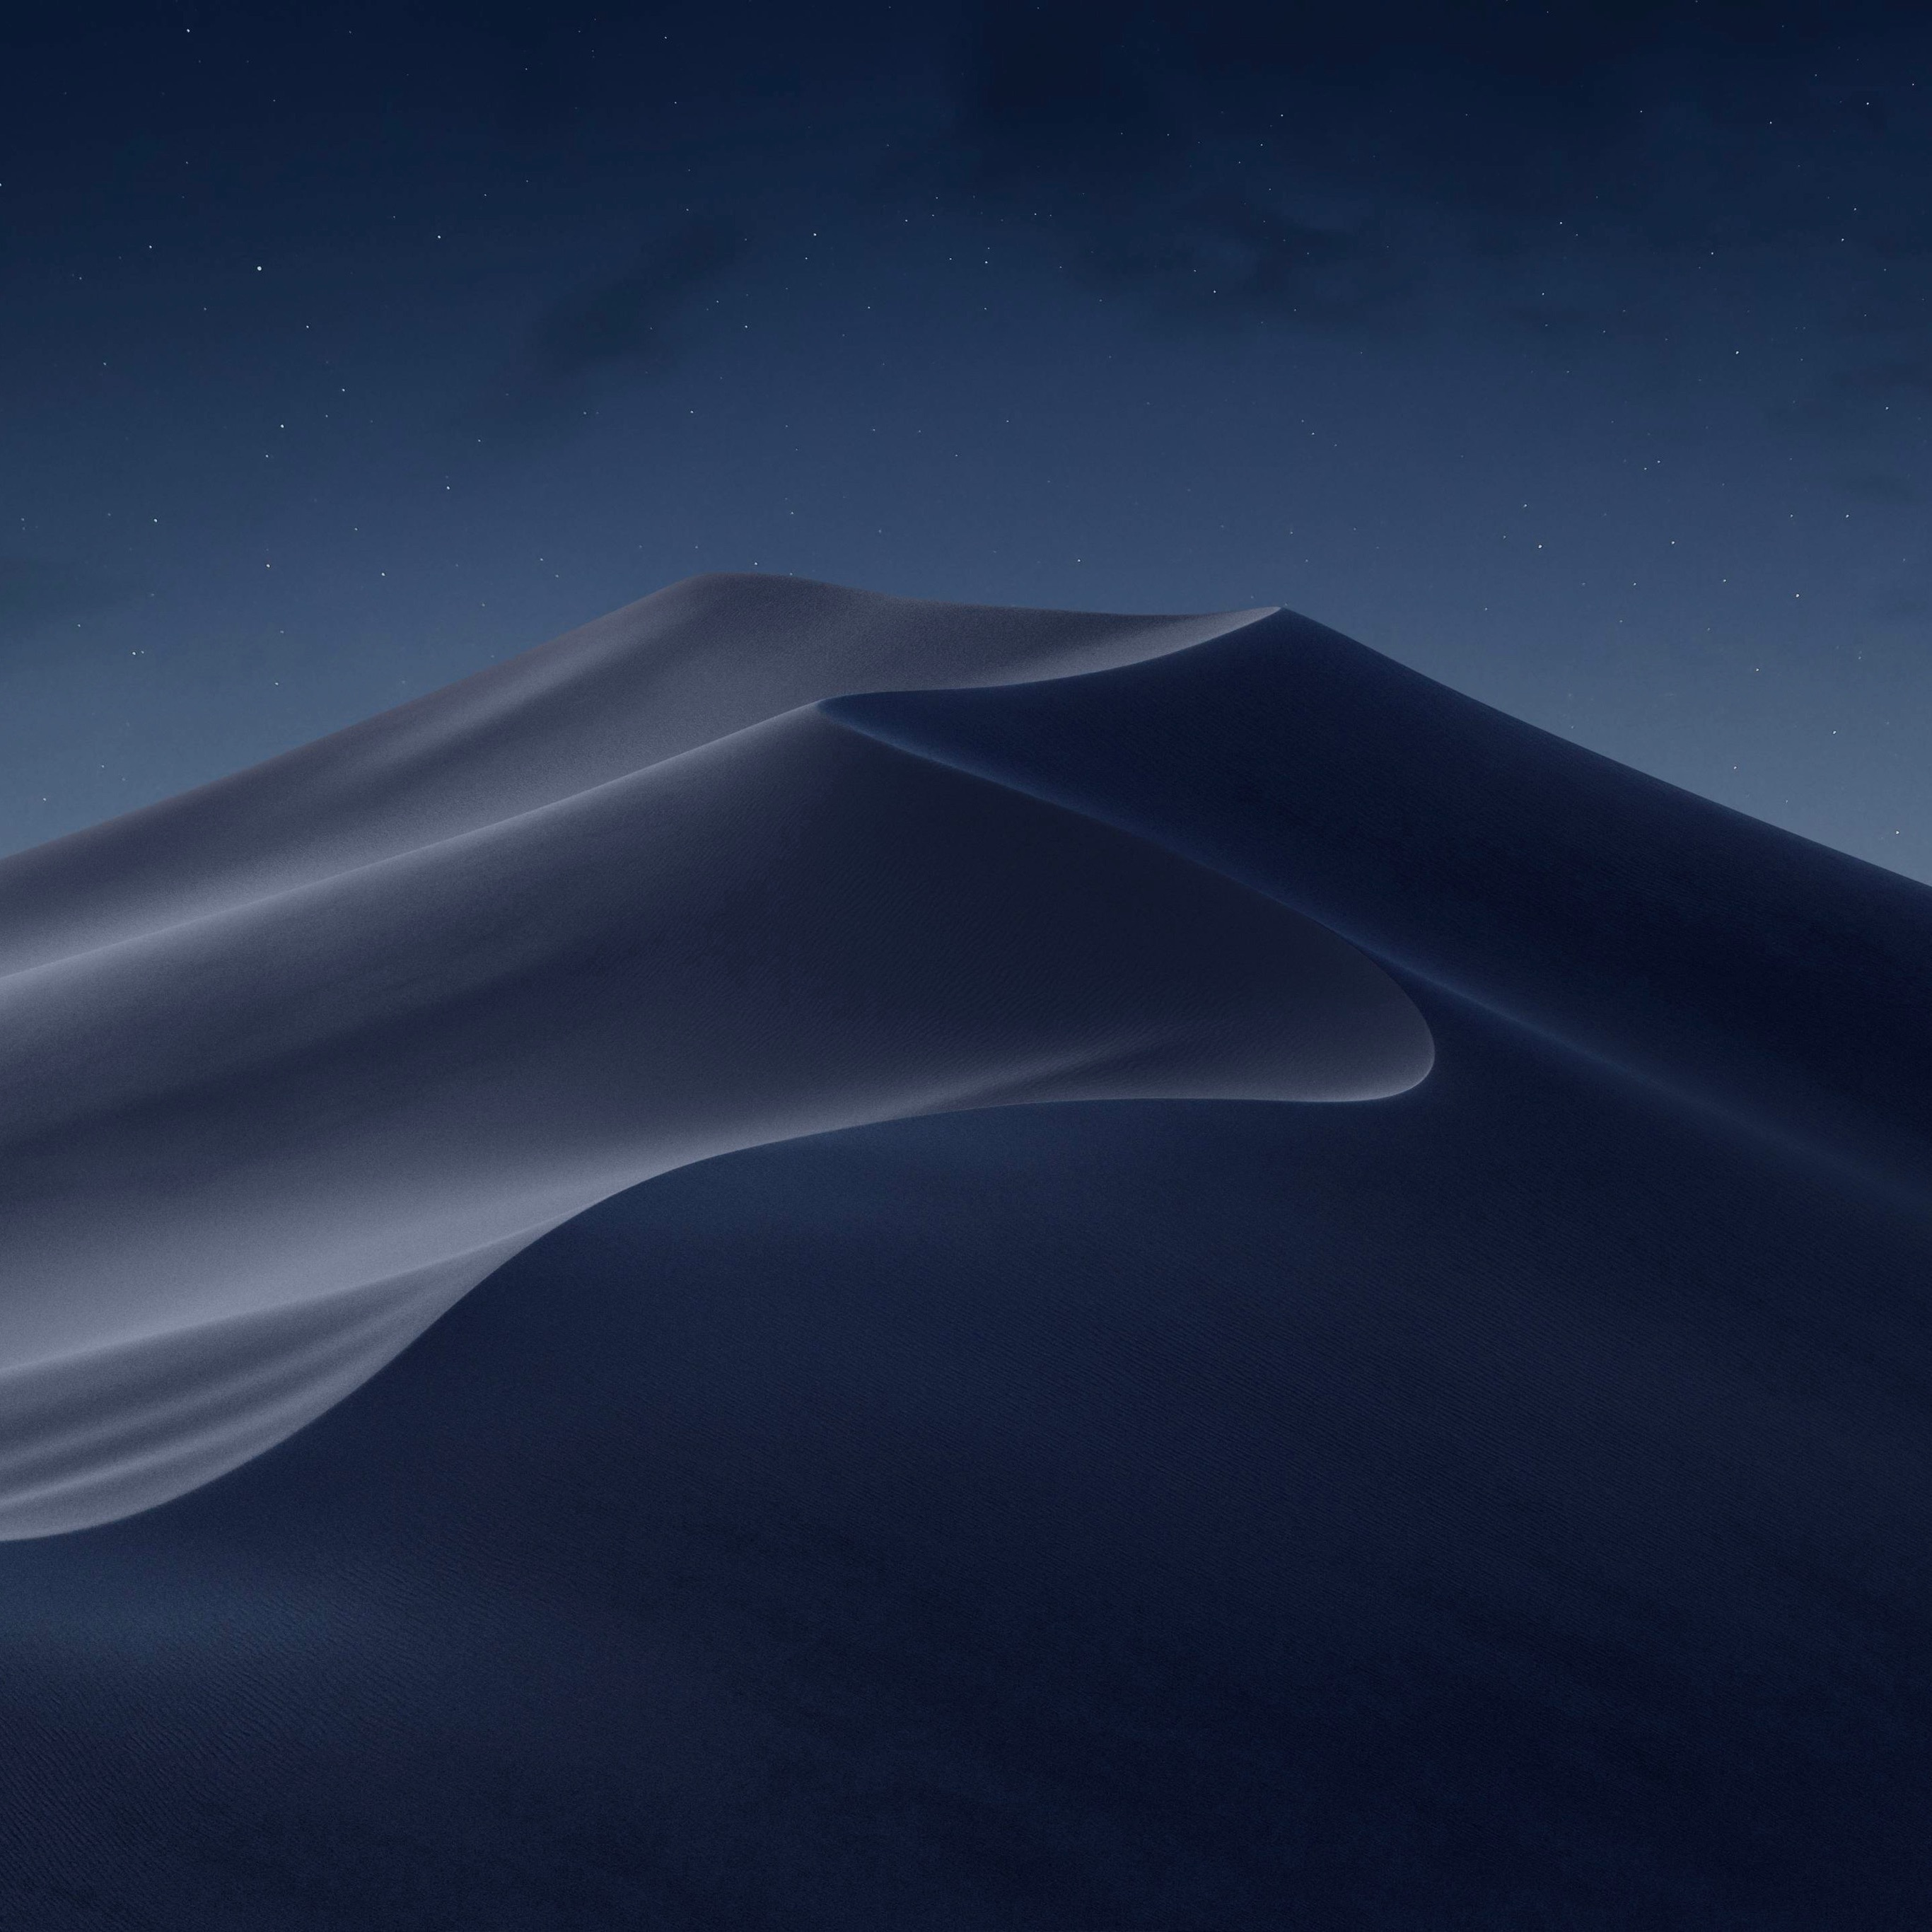 Wallpaper Weekends Macos Mojave Wallpapers For Iphone Ipad And